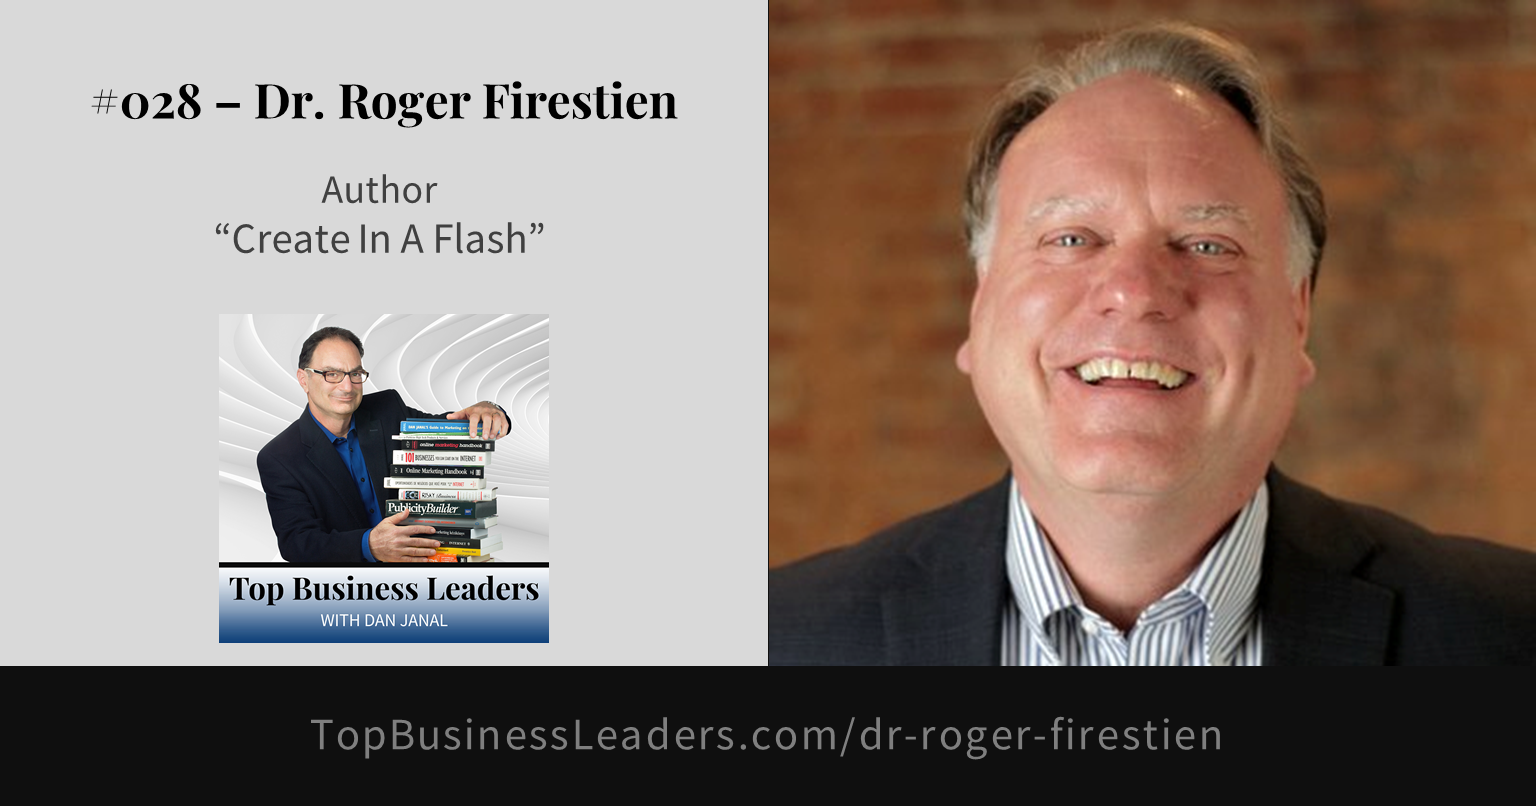 dr-roger-firestien-author-create-in-a-flash